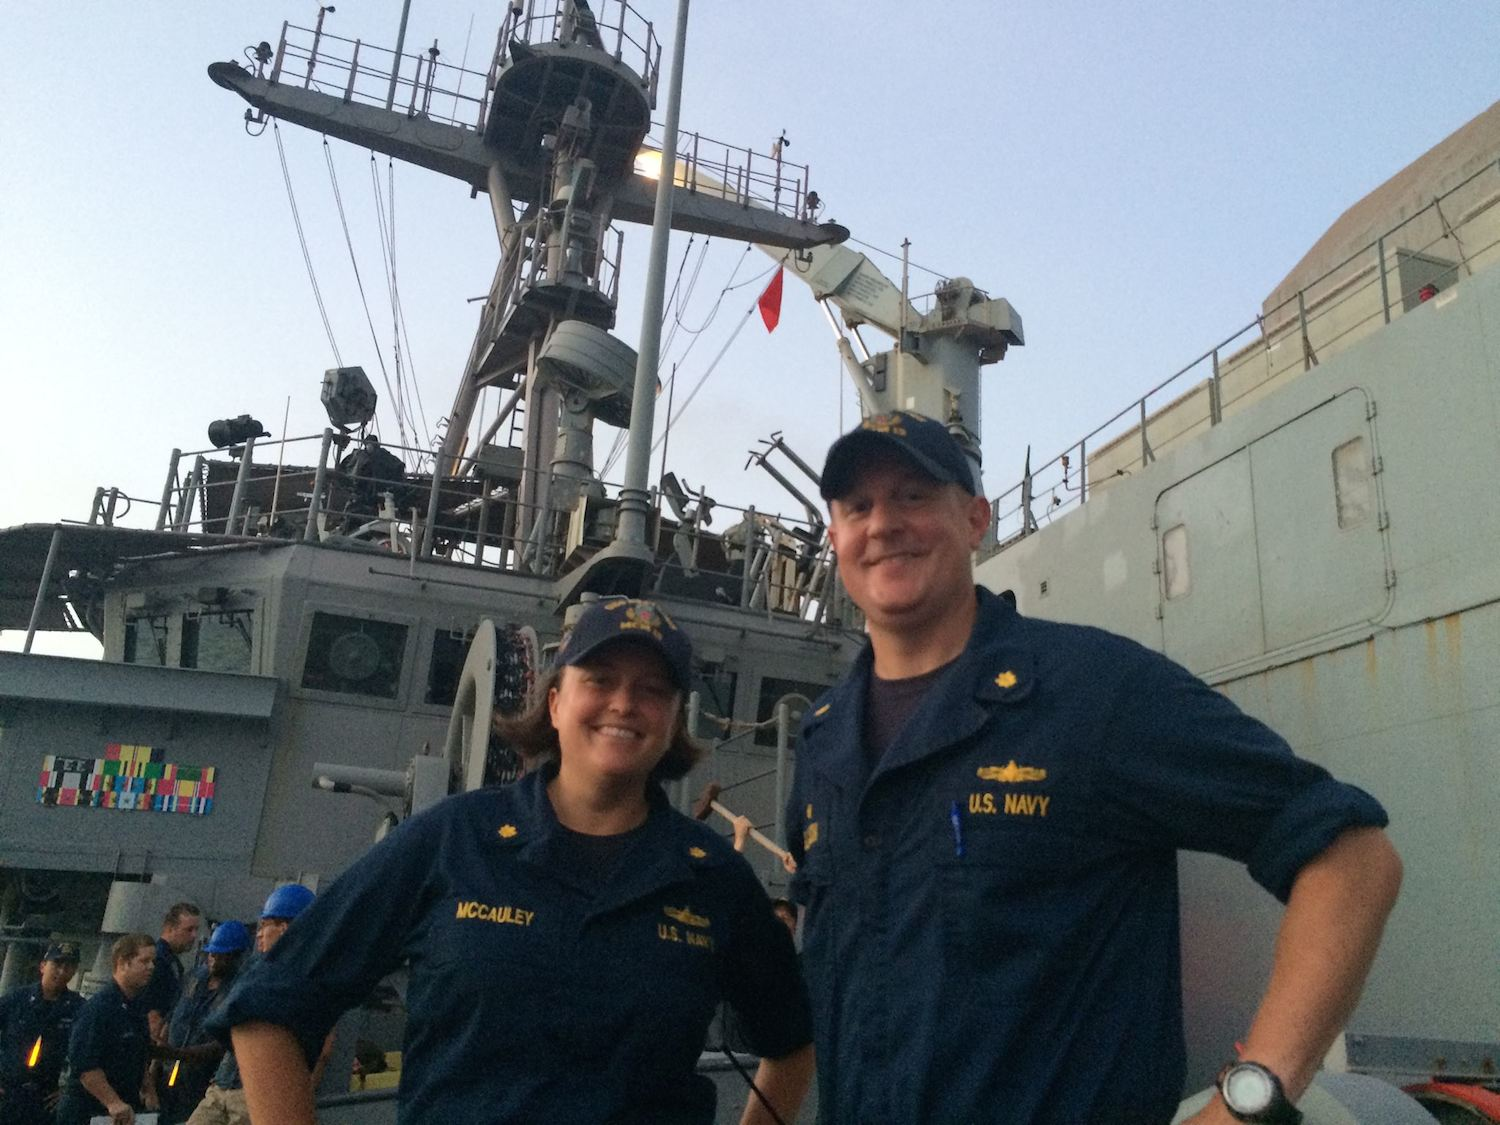 Lt. Cmdr Matt Gleason and his executive officer pose on a ship.